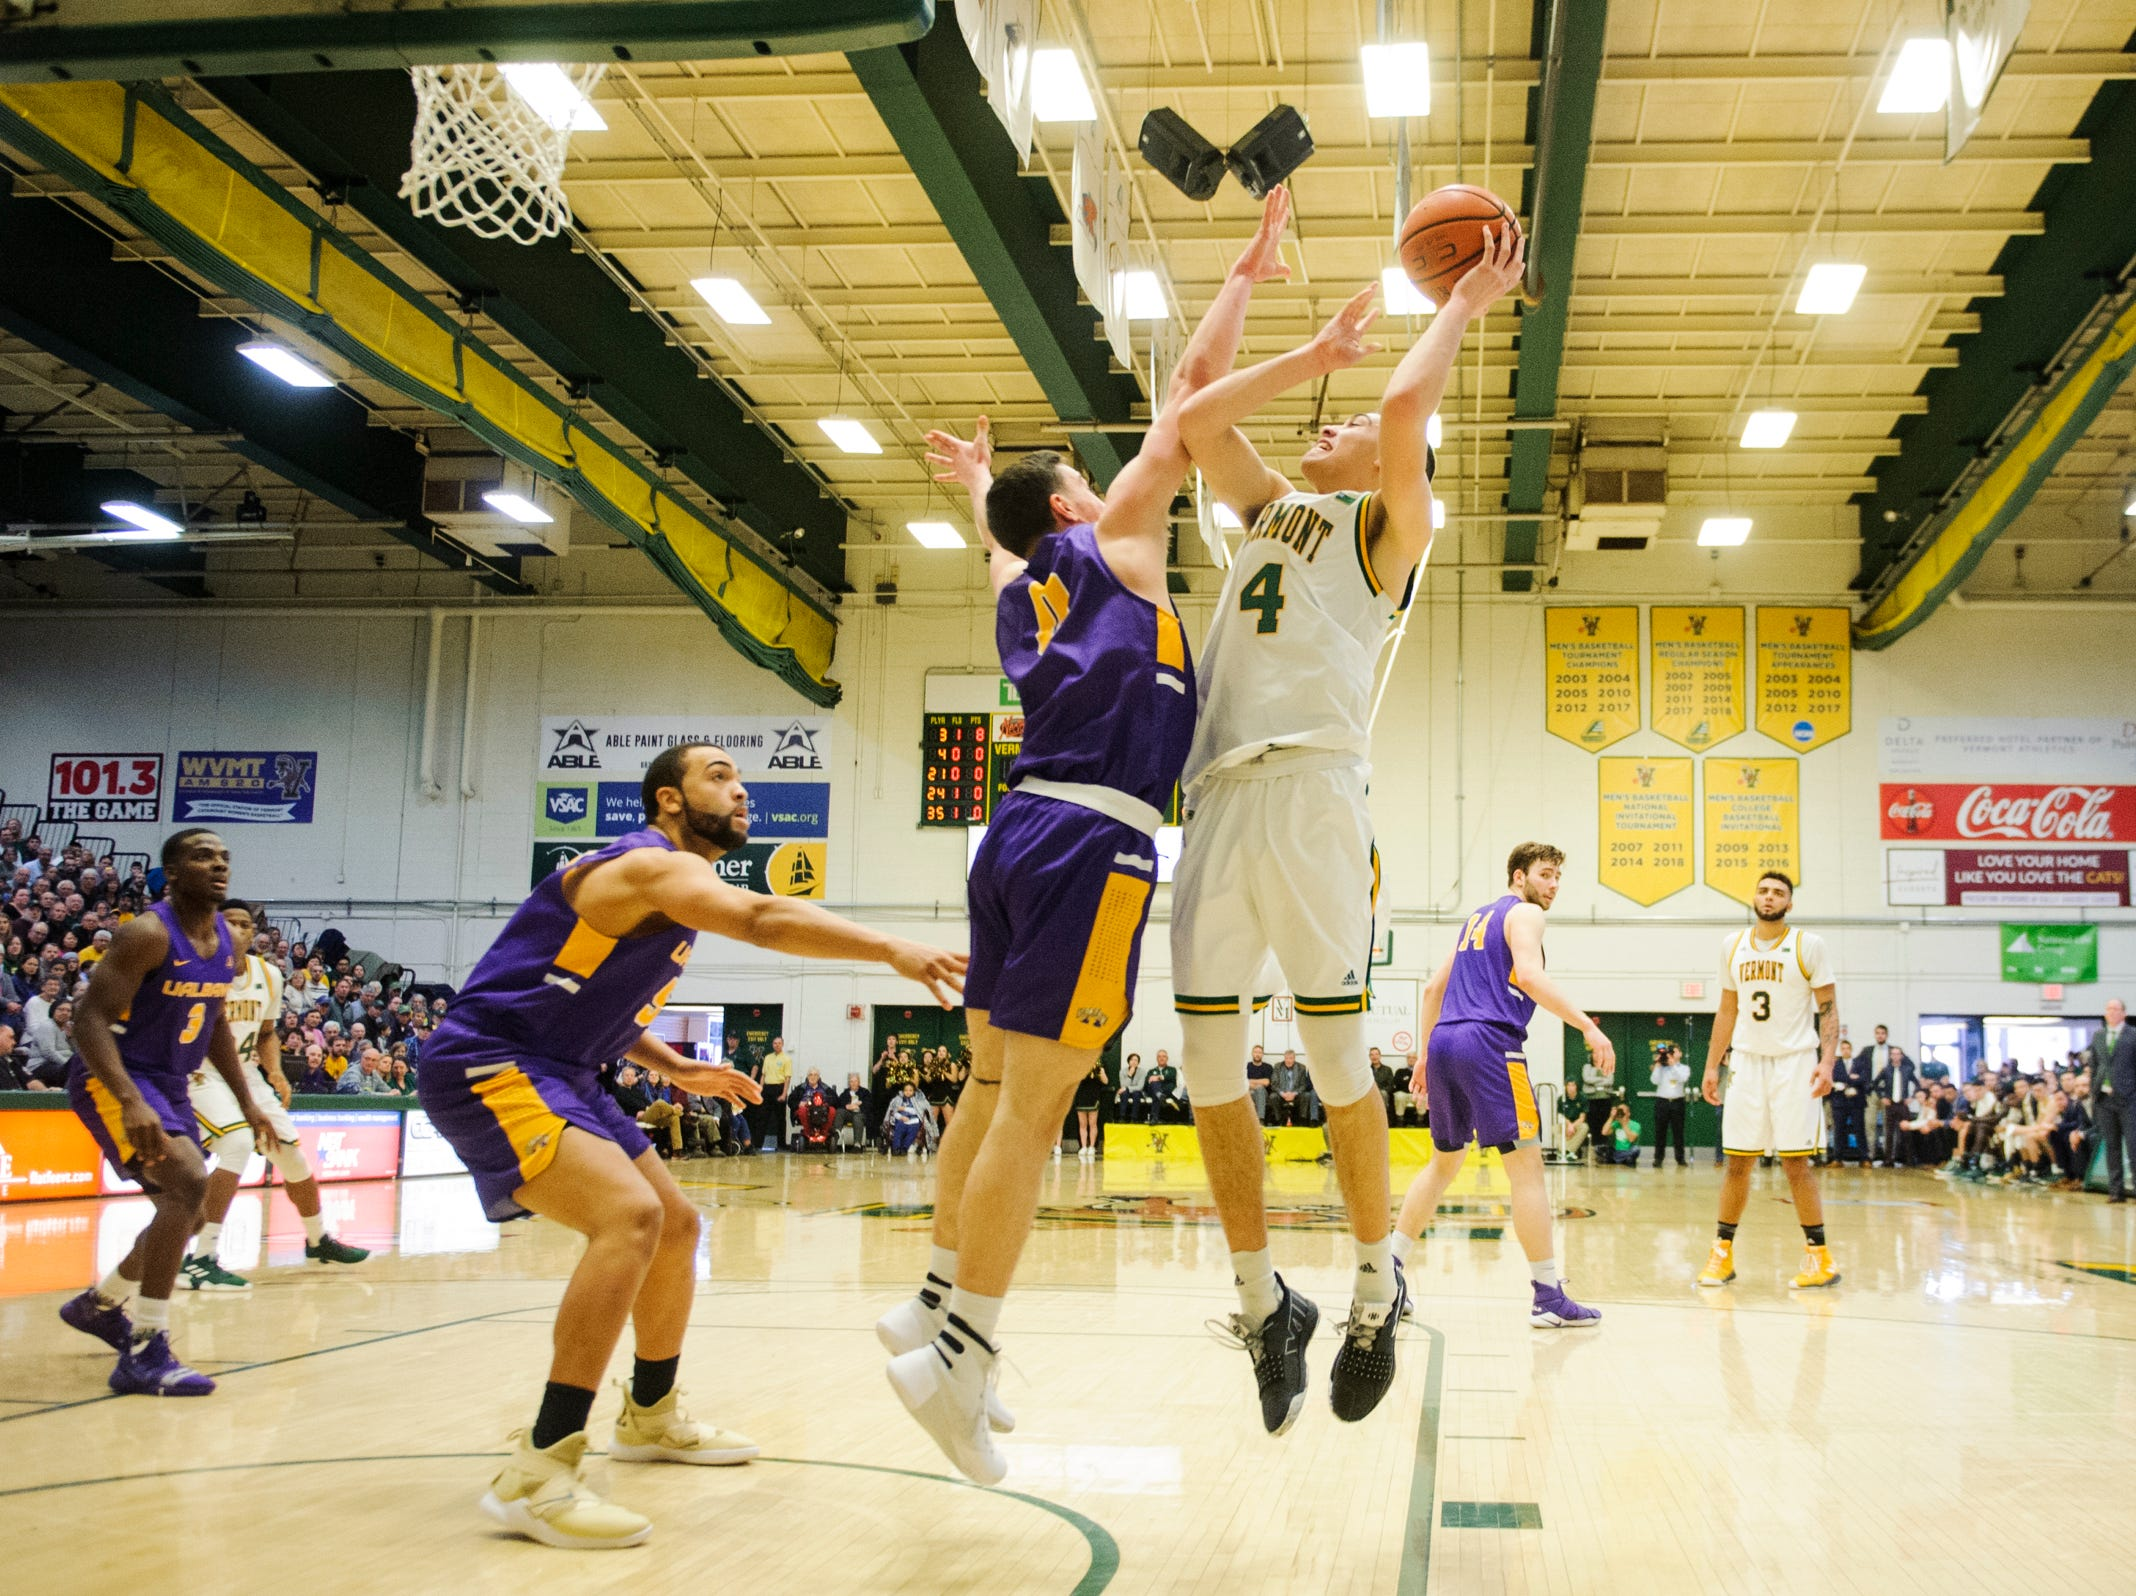 Vermont guard Robin Duncan (4) leaps for a lay up over Albany's Antonio Rizzuto (0) during the men's basketball game between the Albany Great Danes and the Vermont Catamounts at Patrick Gym on Saturday February 9, 2019 in Burlington, Vermont.